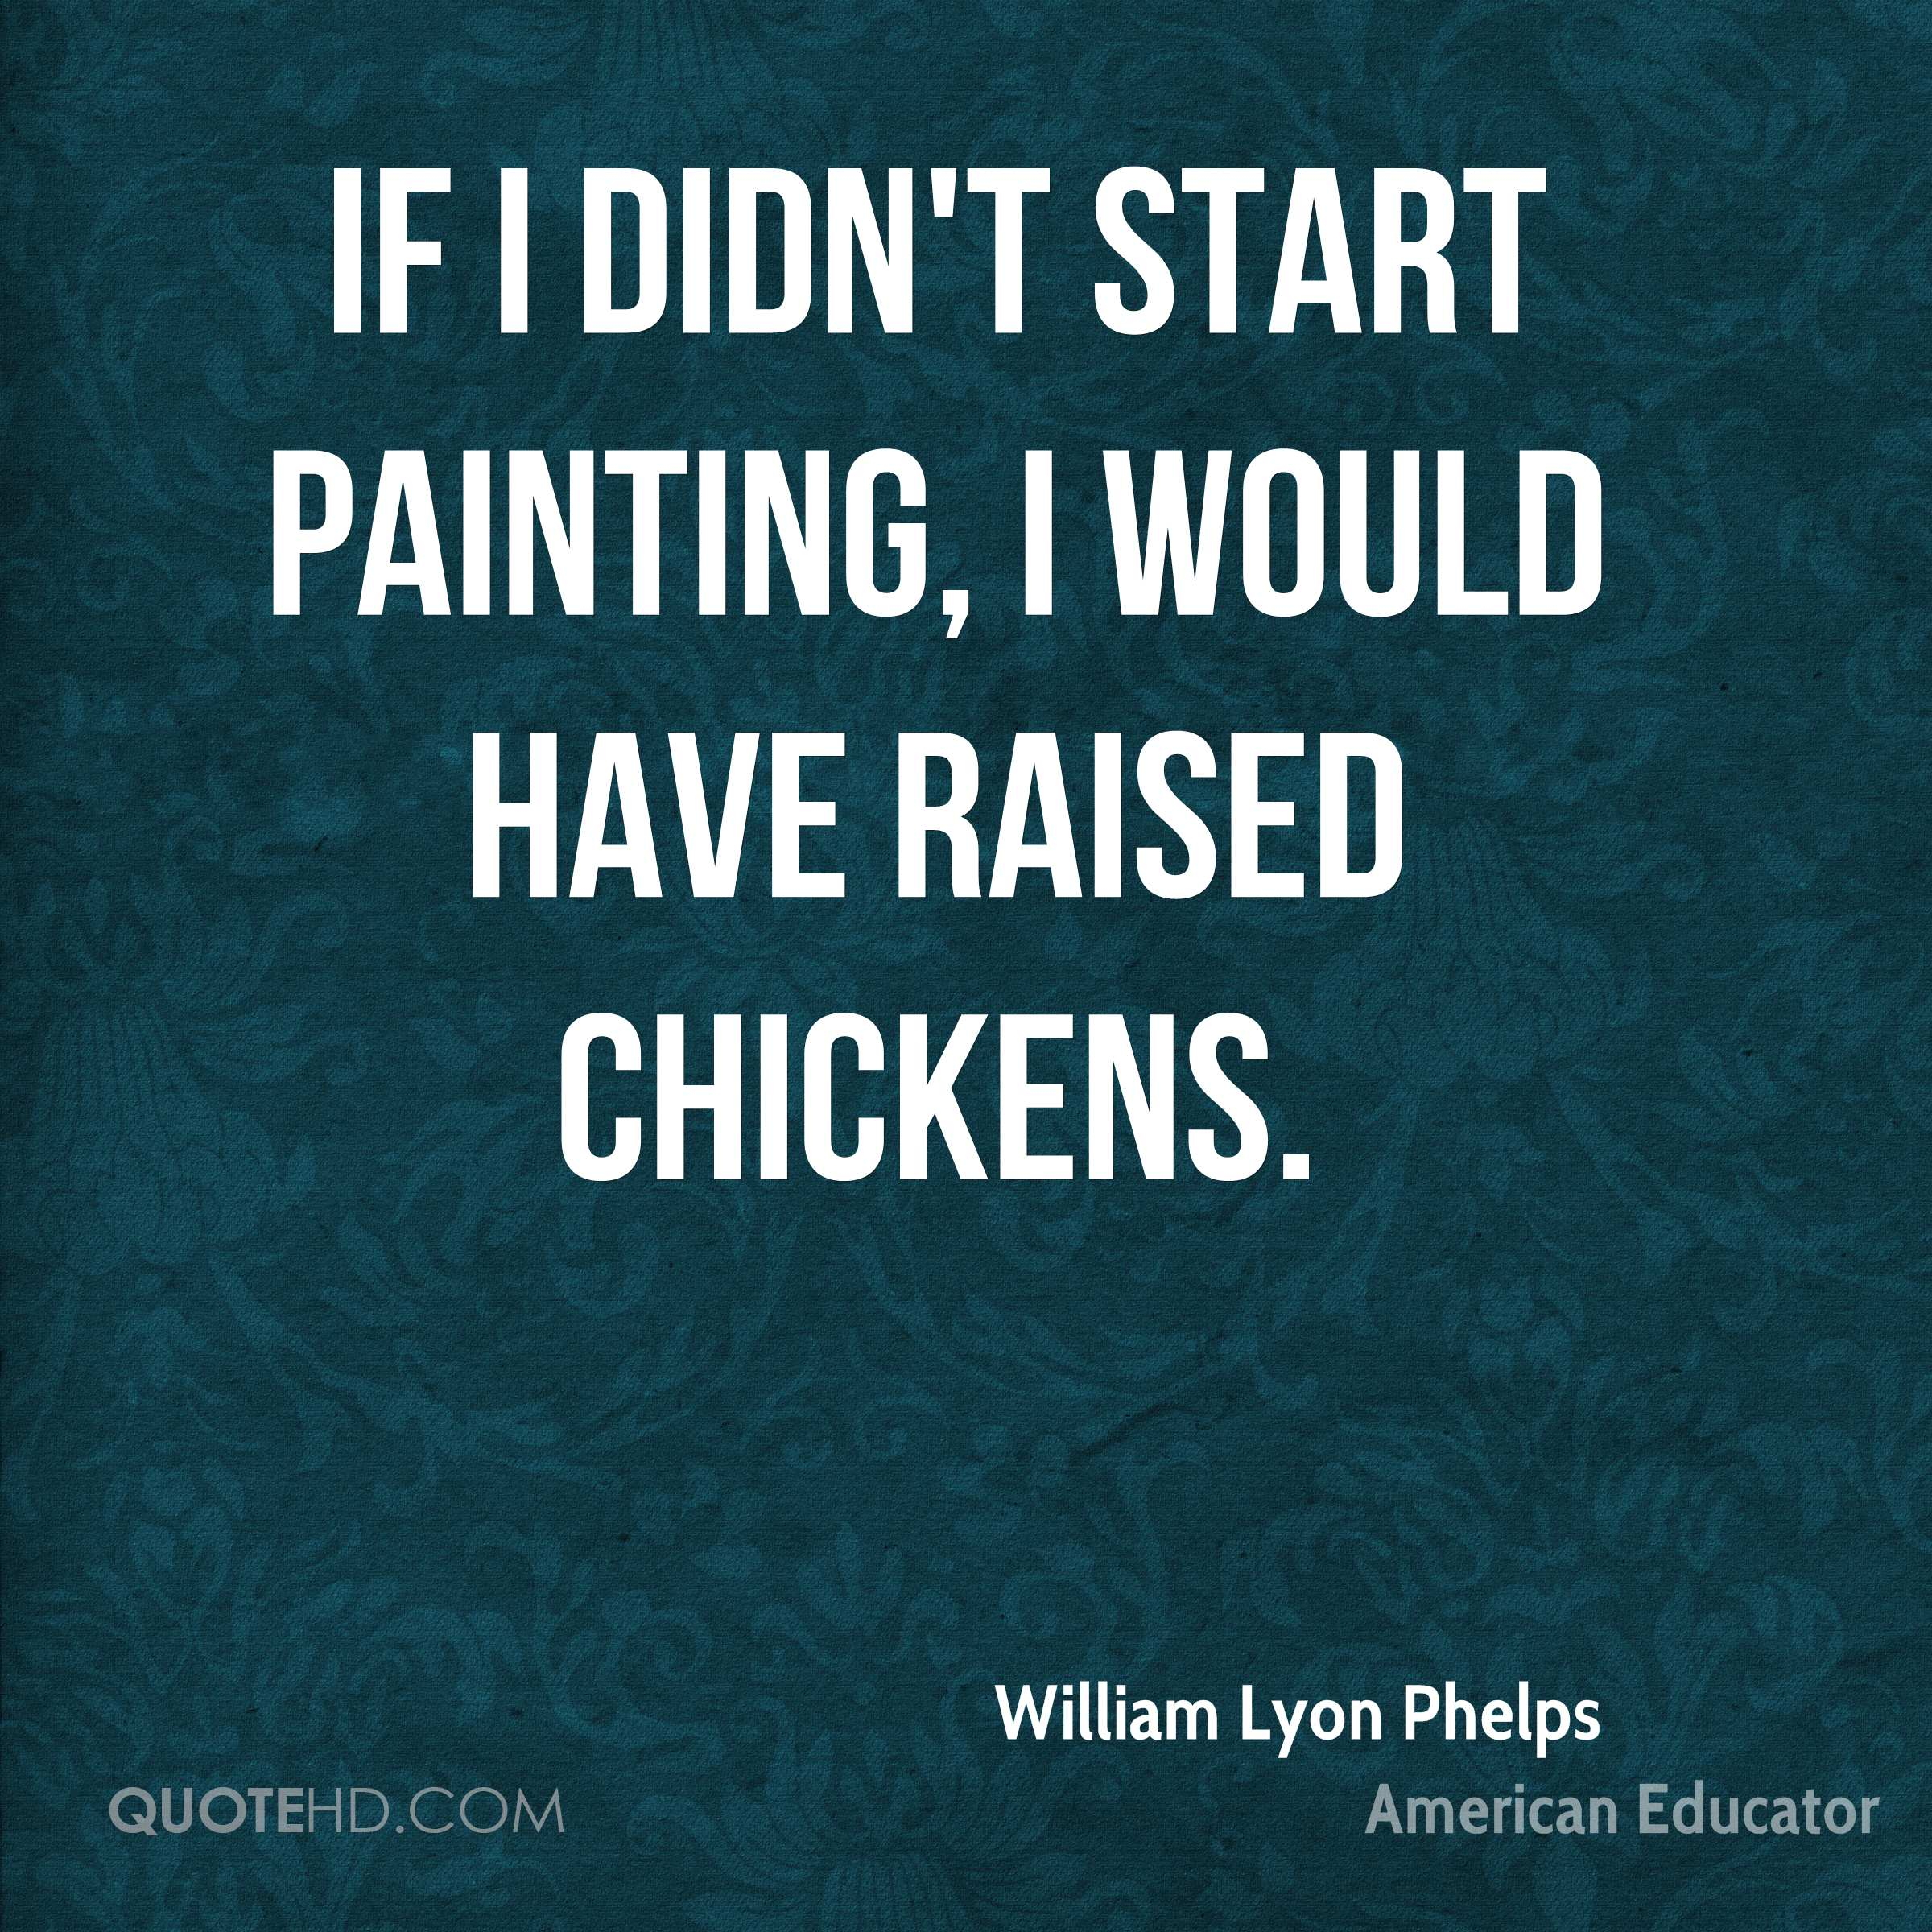 If I didn't start painting, I would have raised chickens.